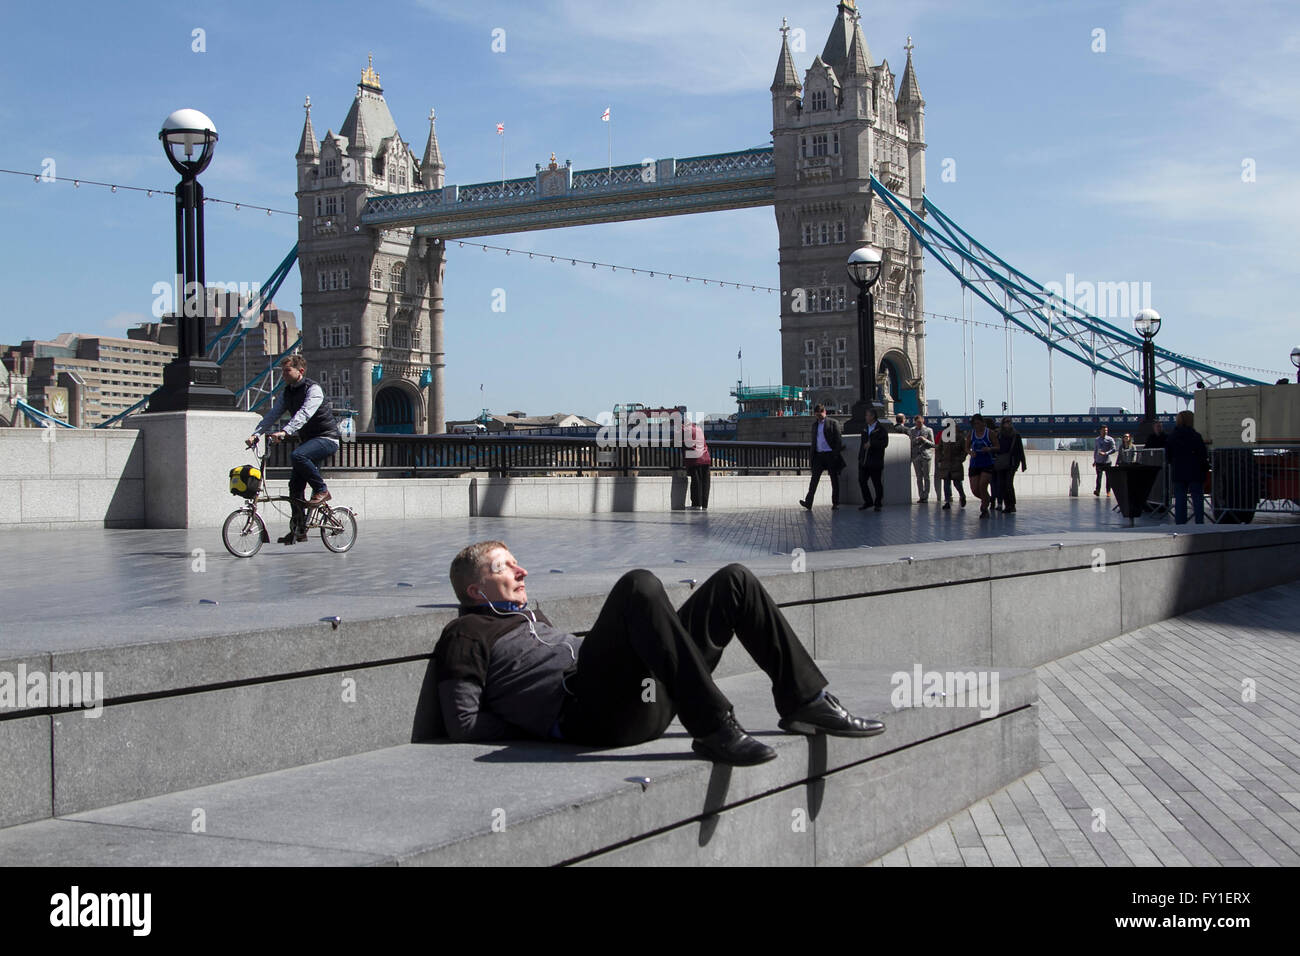 London Uk 20th April 2016 Uk Weather Office Workers And Tourists Enjoy A Beautiful Day And Warm Weather On London Riverside During Their Lunch Breaks